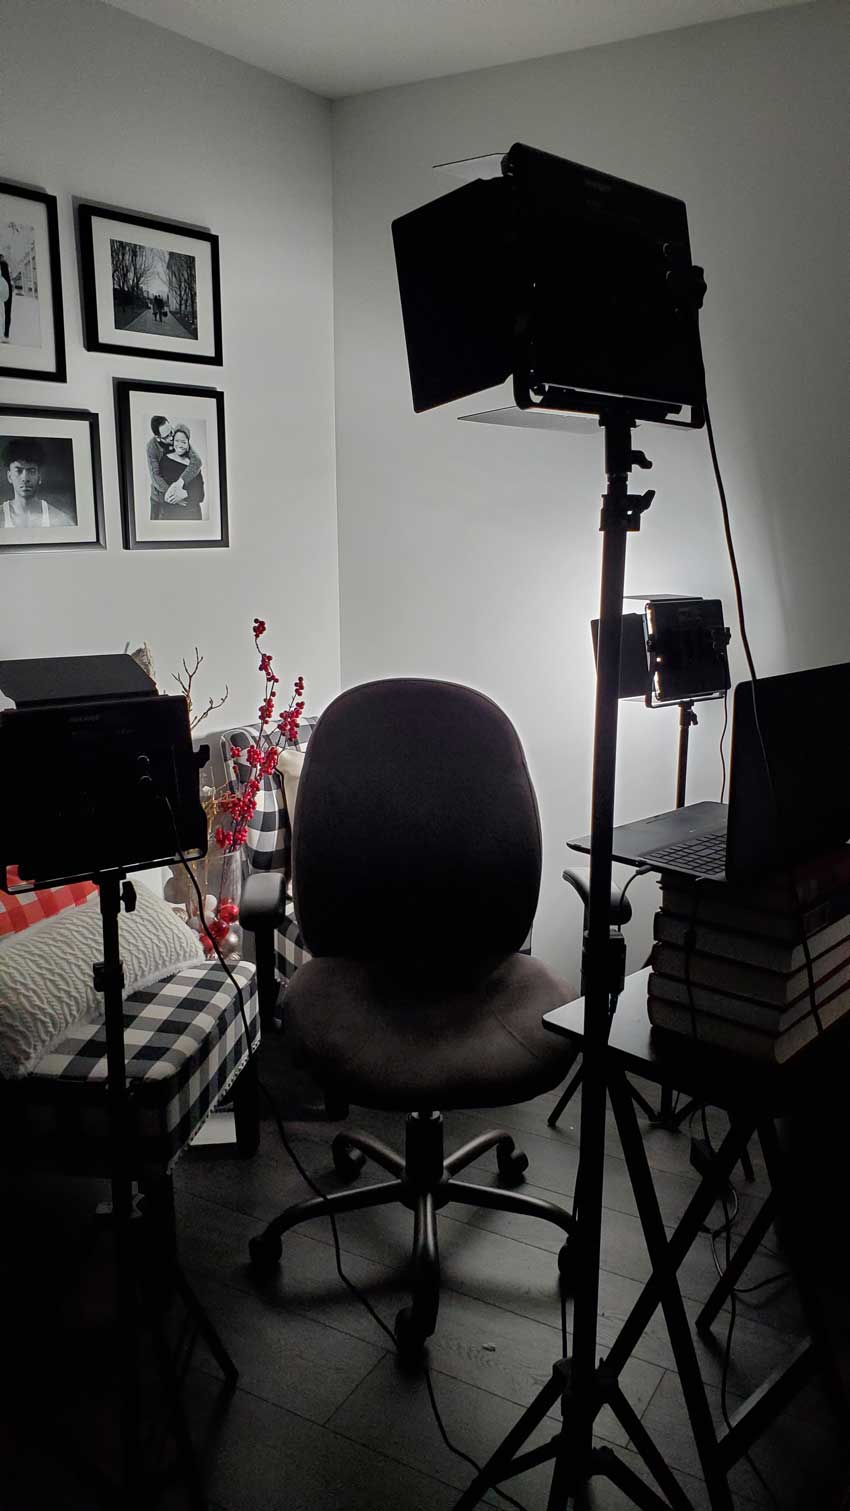 empty chair and studio lights